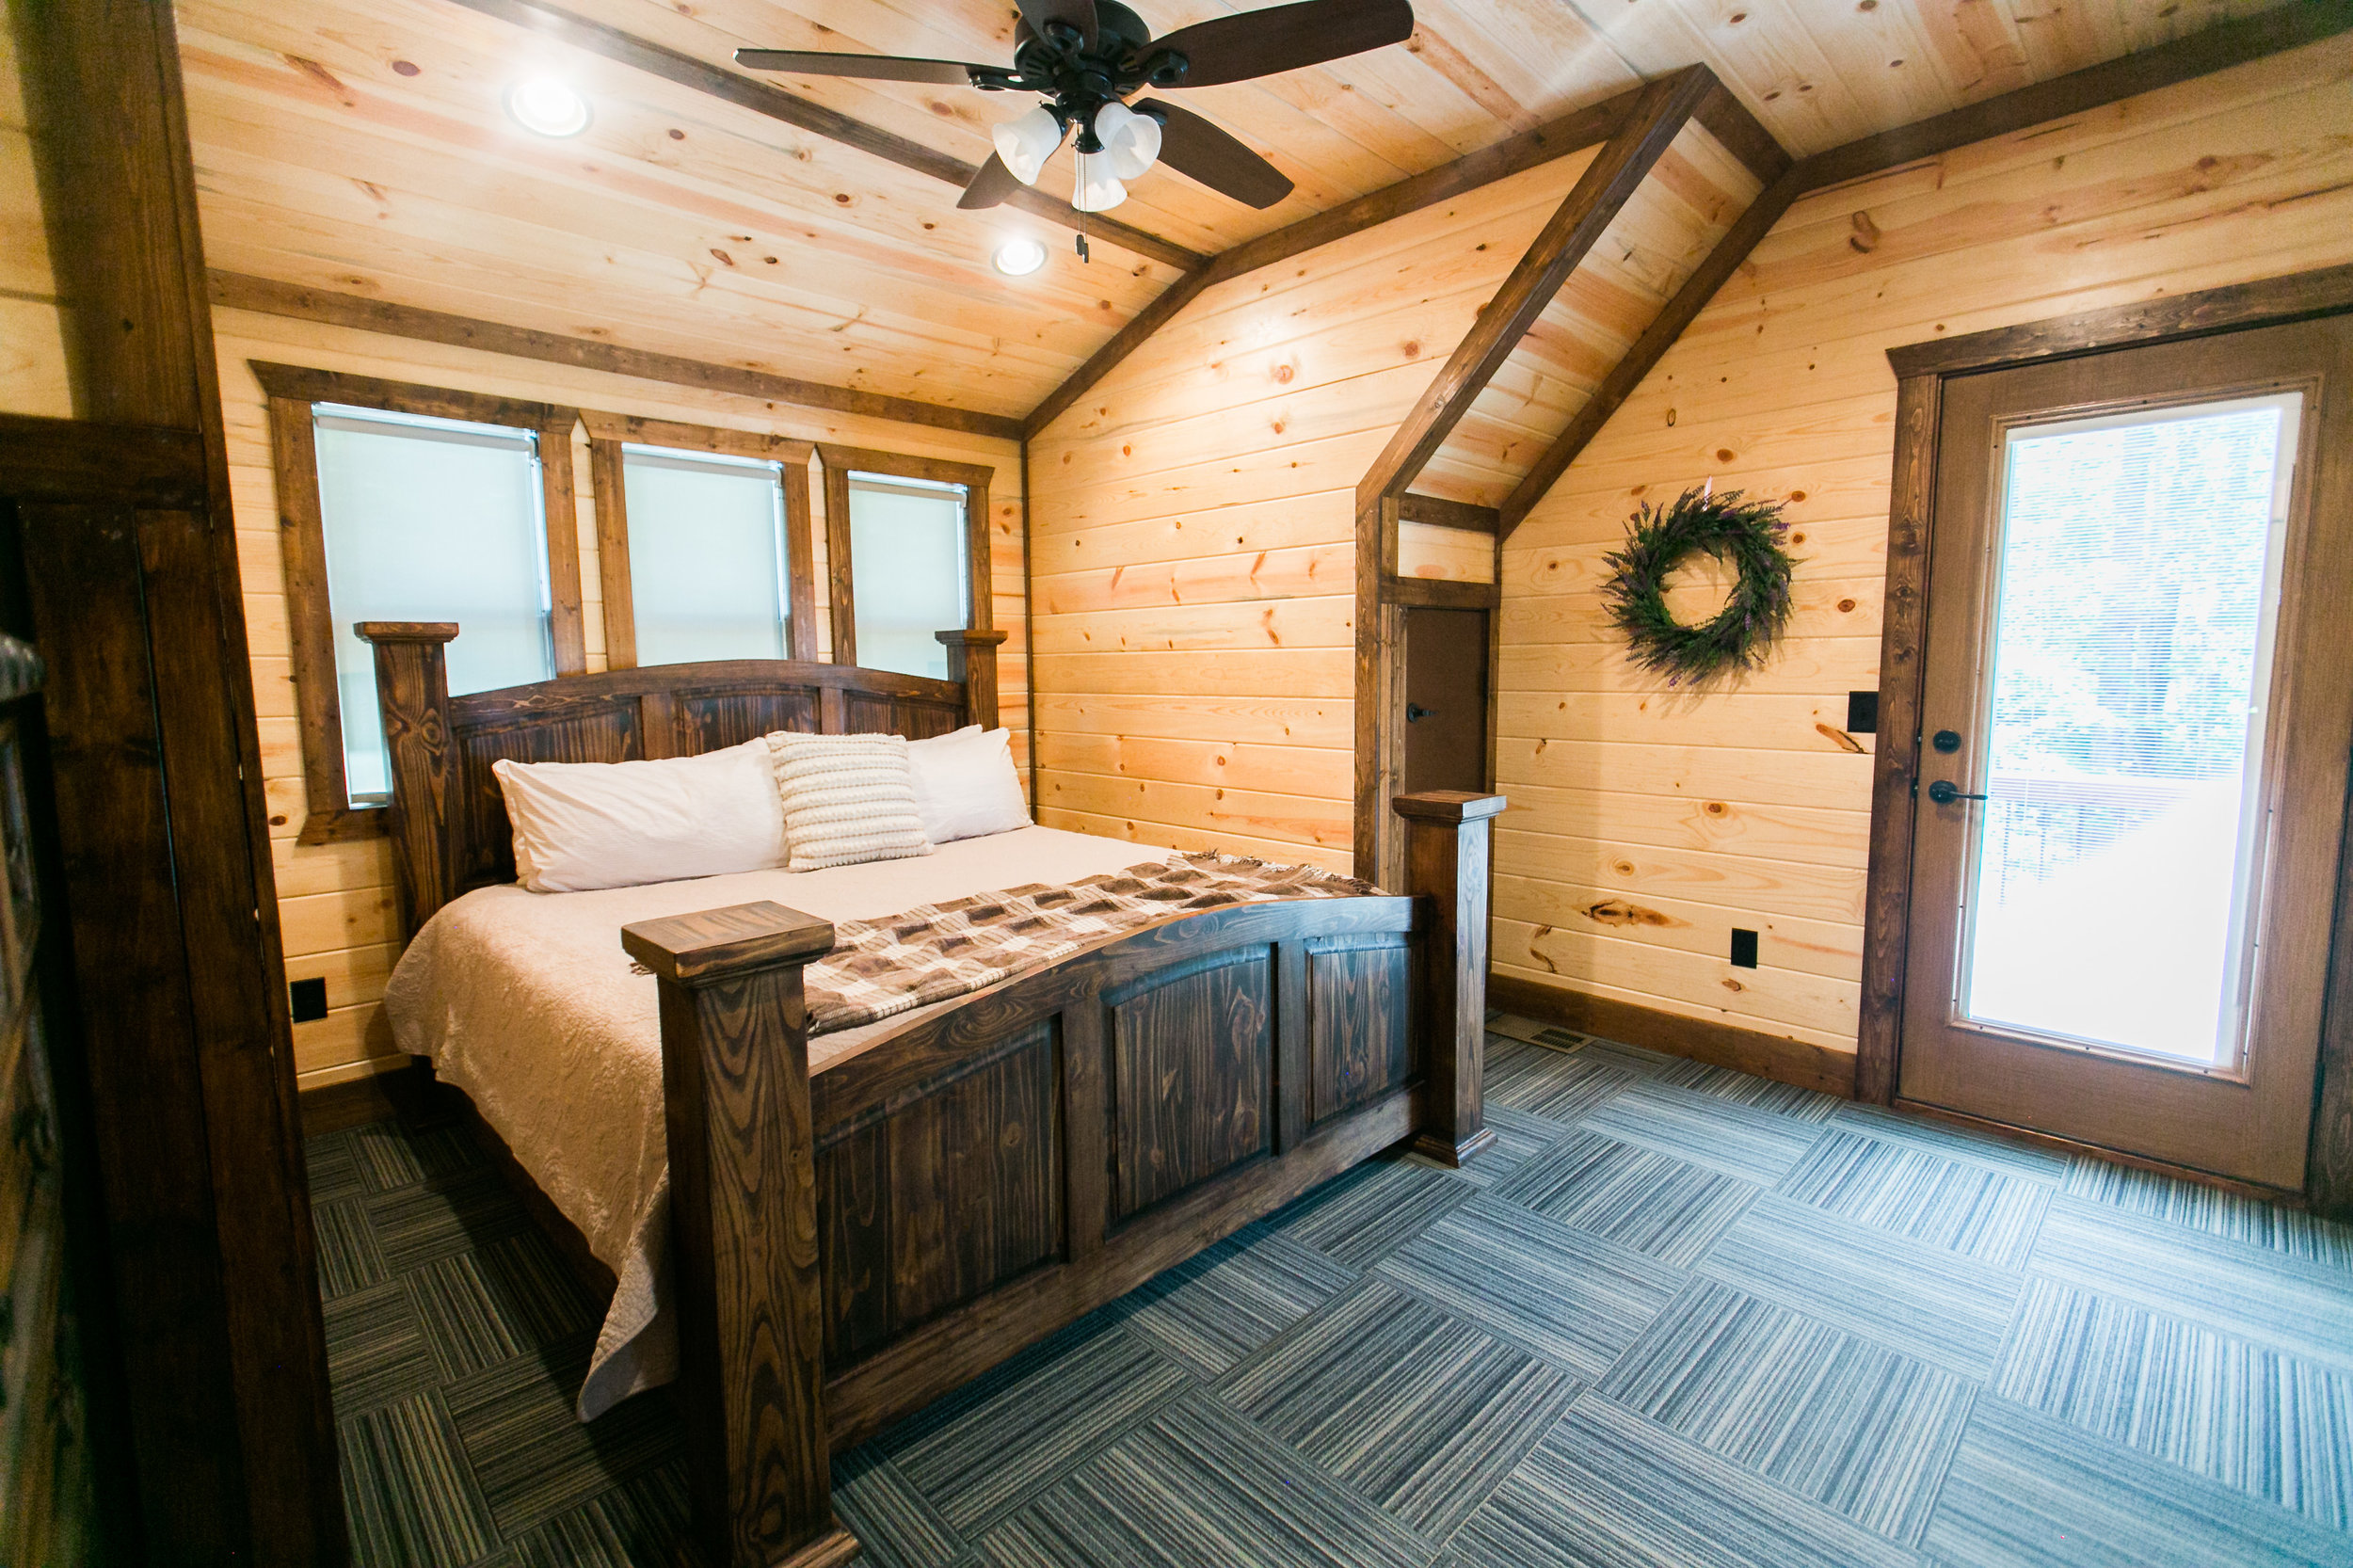 vacation spots driving distance of okc tulsa oklahoma city broken bow lake hochatown steven's gap luxury cabins hiking adventure awaits modern cabin rustic mountains rivers industrial